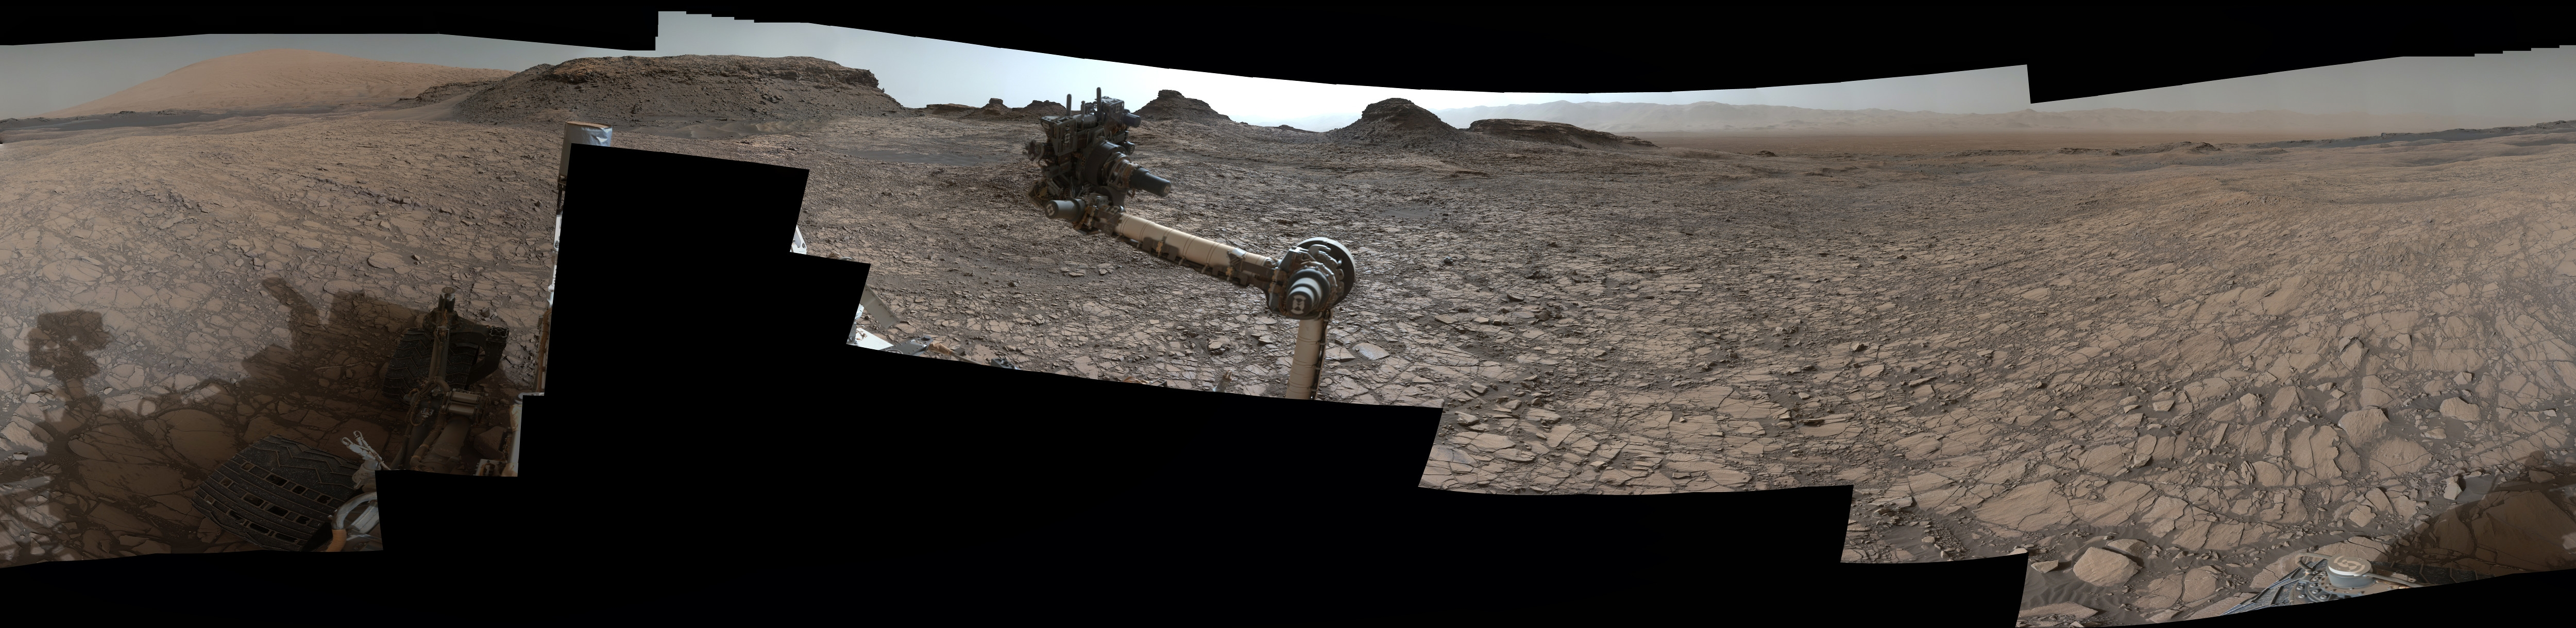 is_curiosity_panomara_at_murray_buttes_5000px.jpg